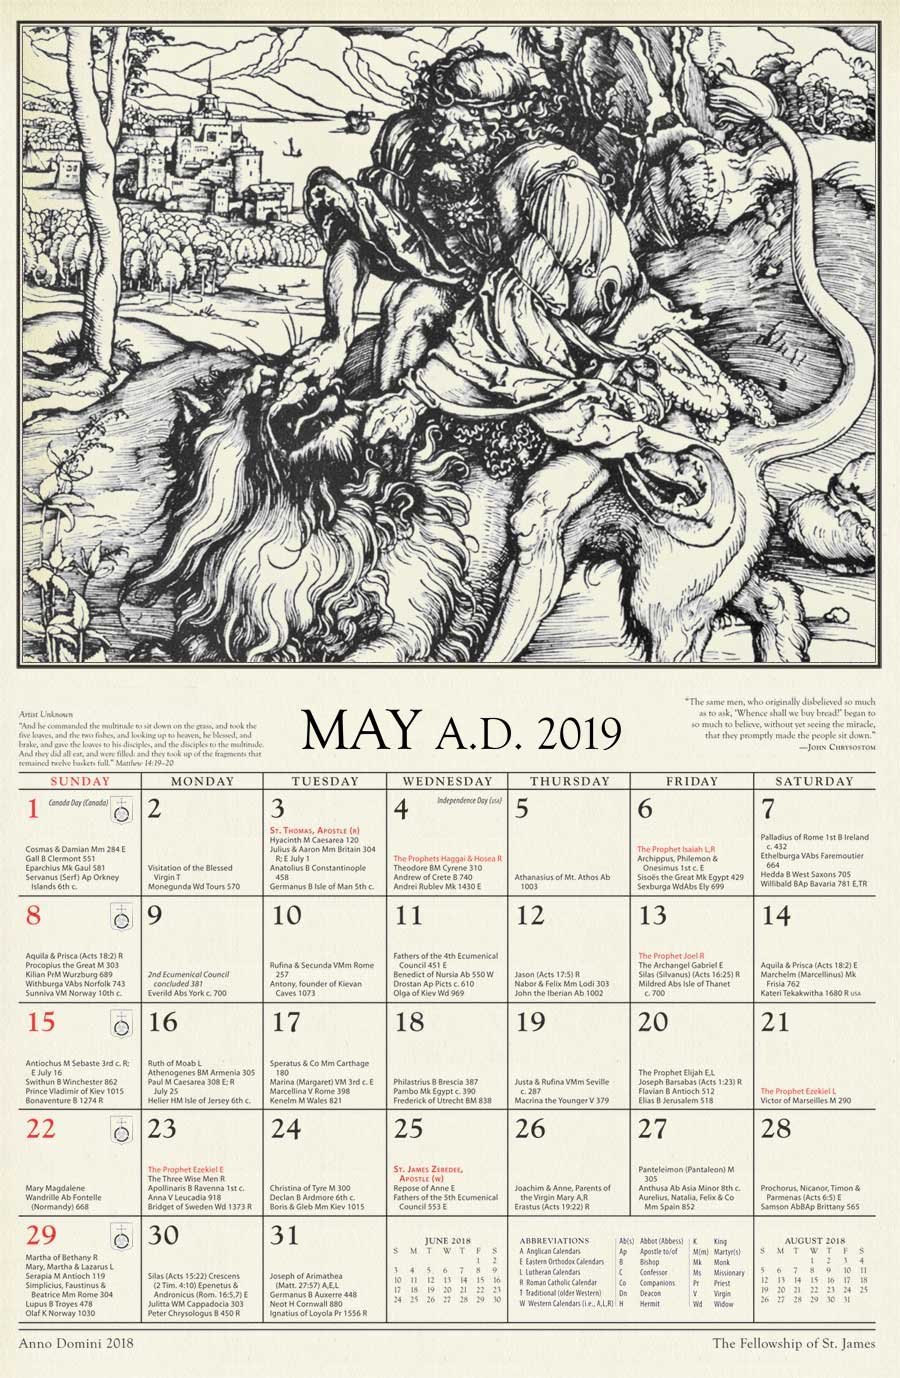 Anno Domini: The 2019 St. James Calendar Calendar X 2019